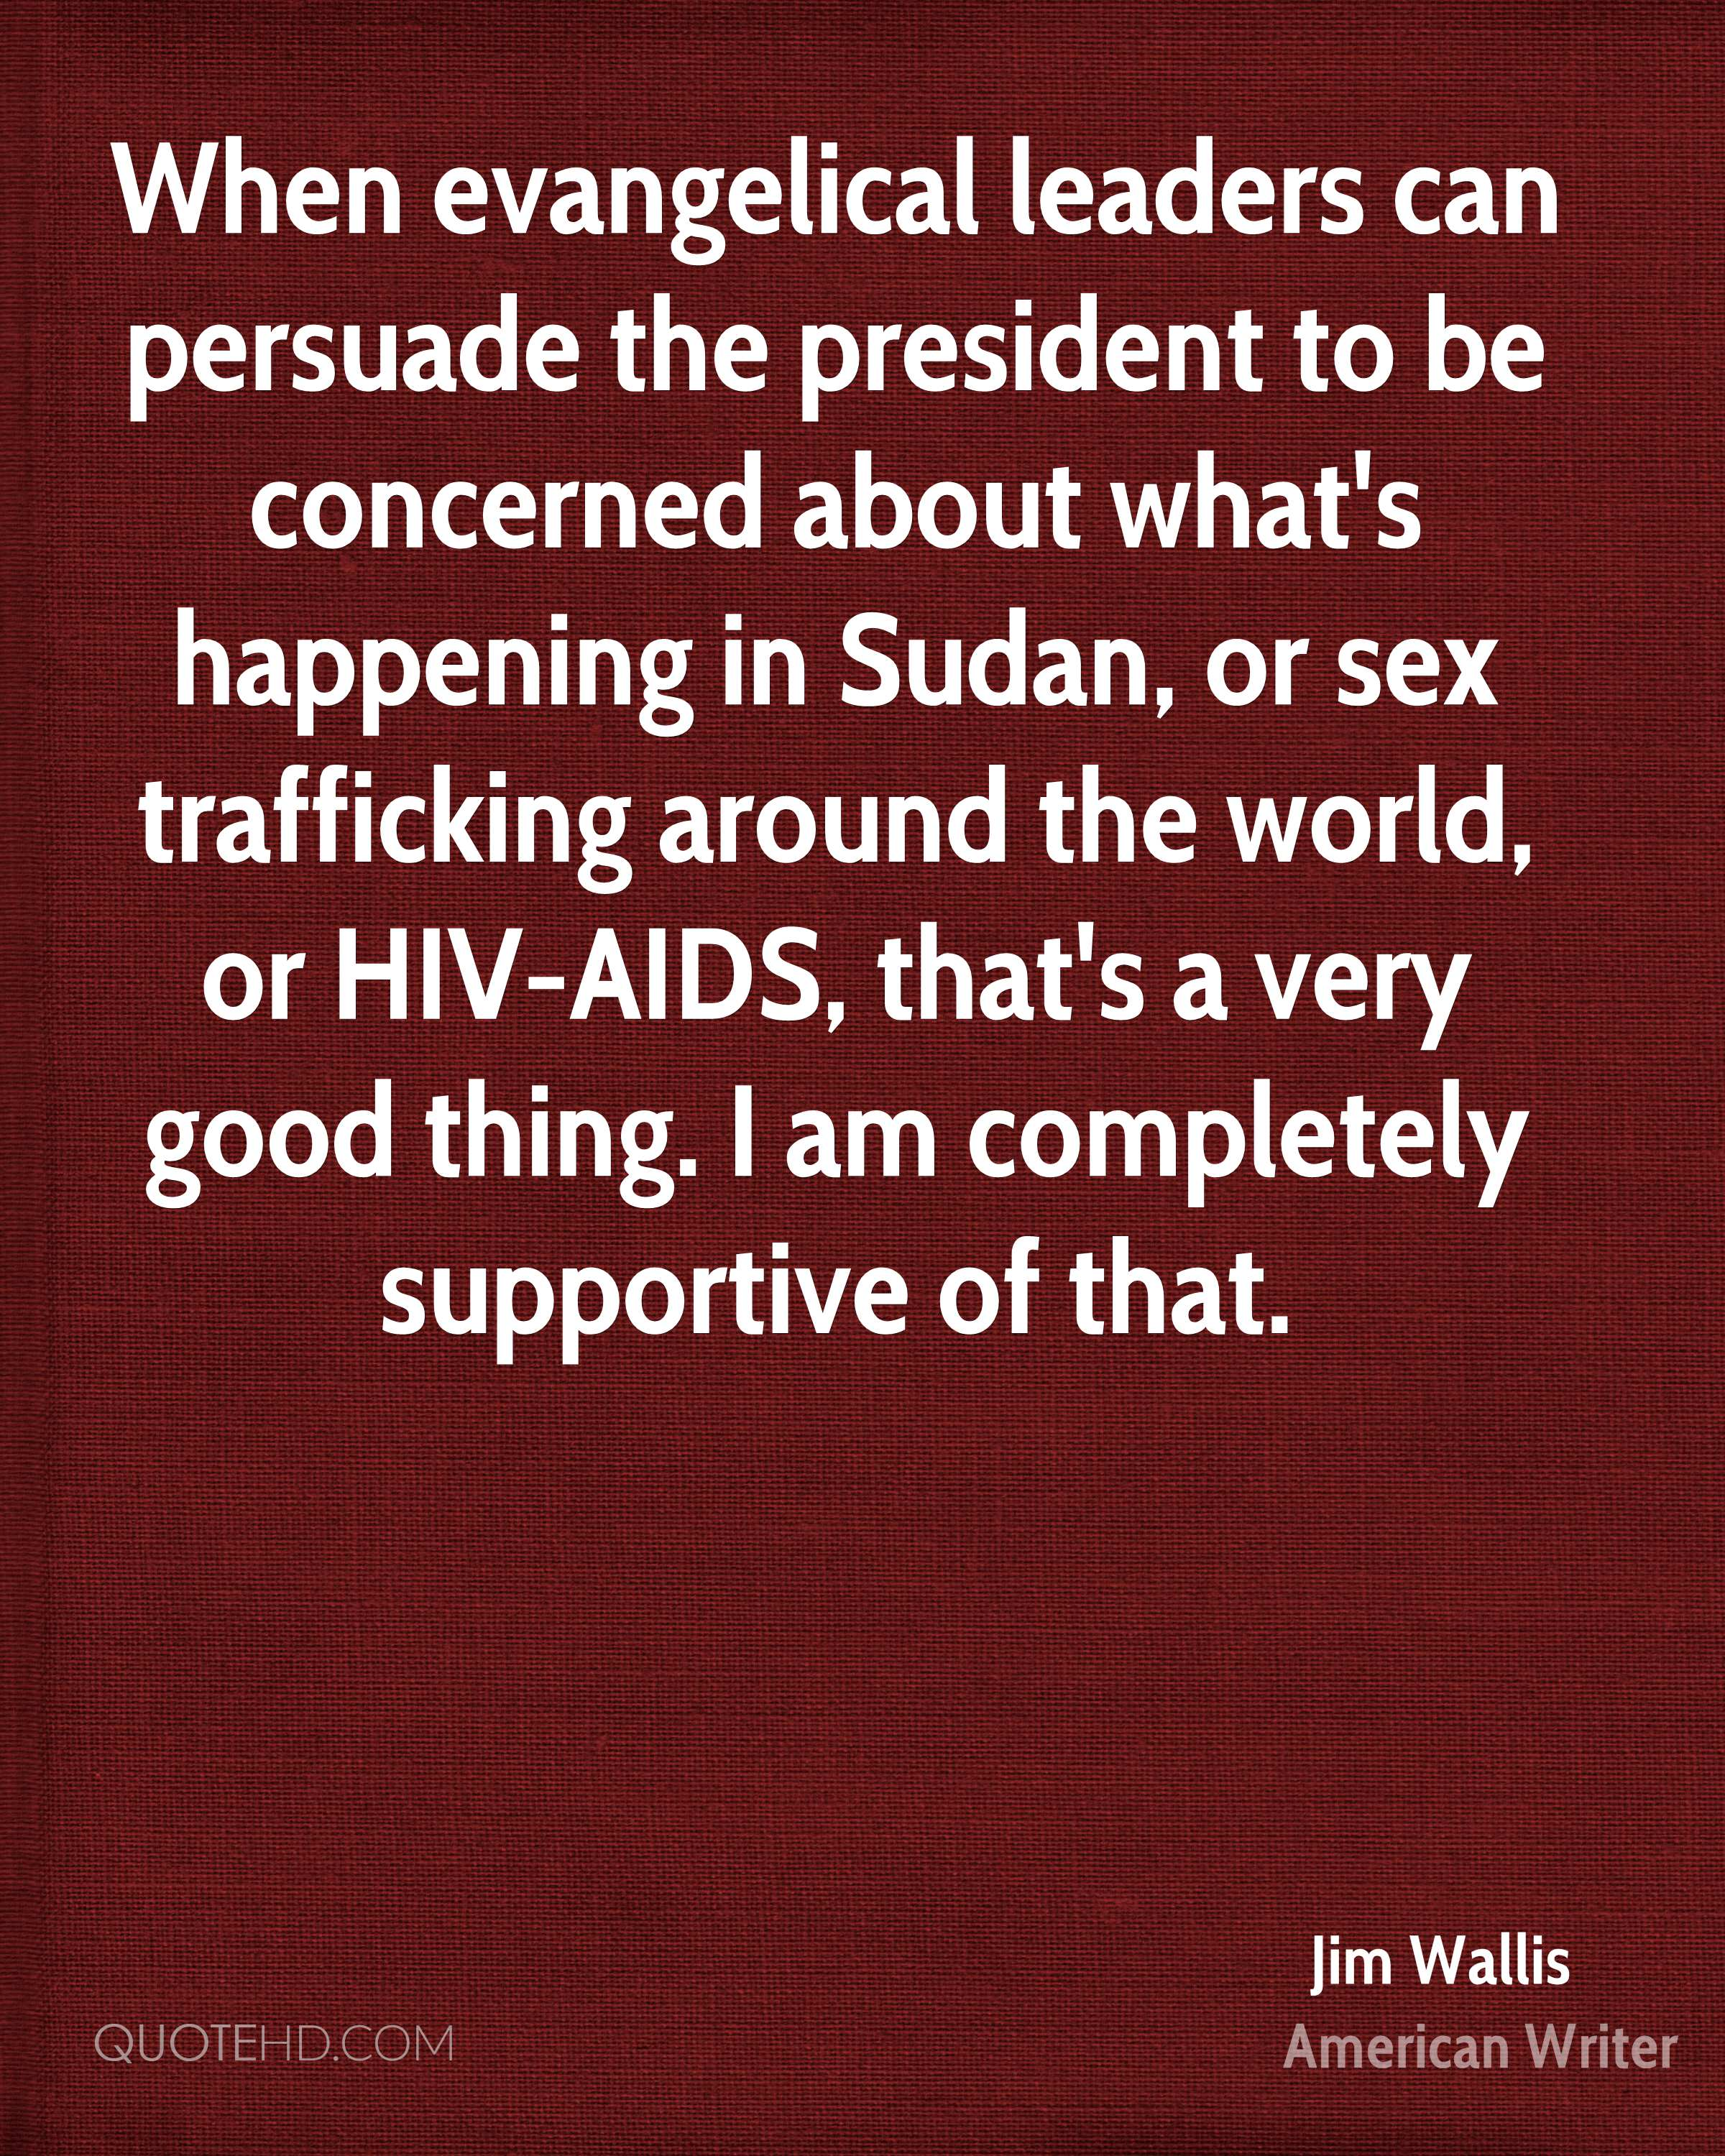 When evangelical leaders can persuade the president to be concerned about what's happening in Sudan, or sex trafficking around the world, or HIV-AIDS, that's a very good thing. I am completely supportive of that.